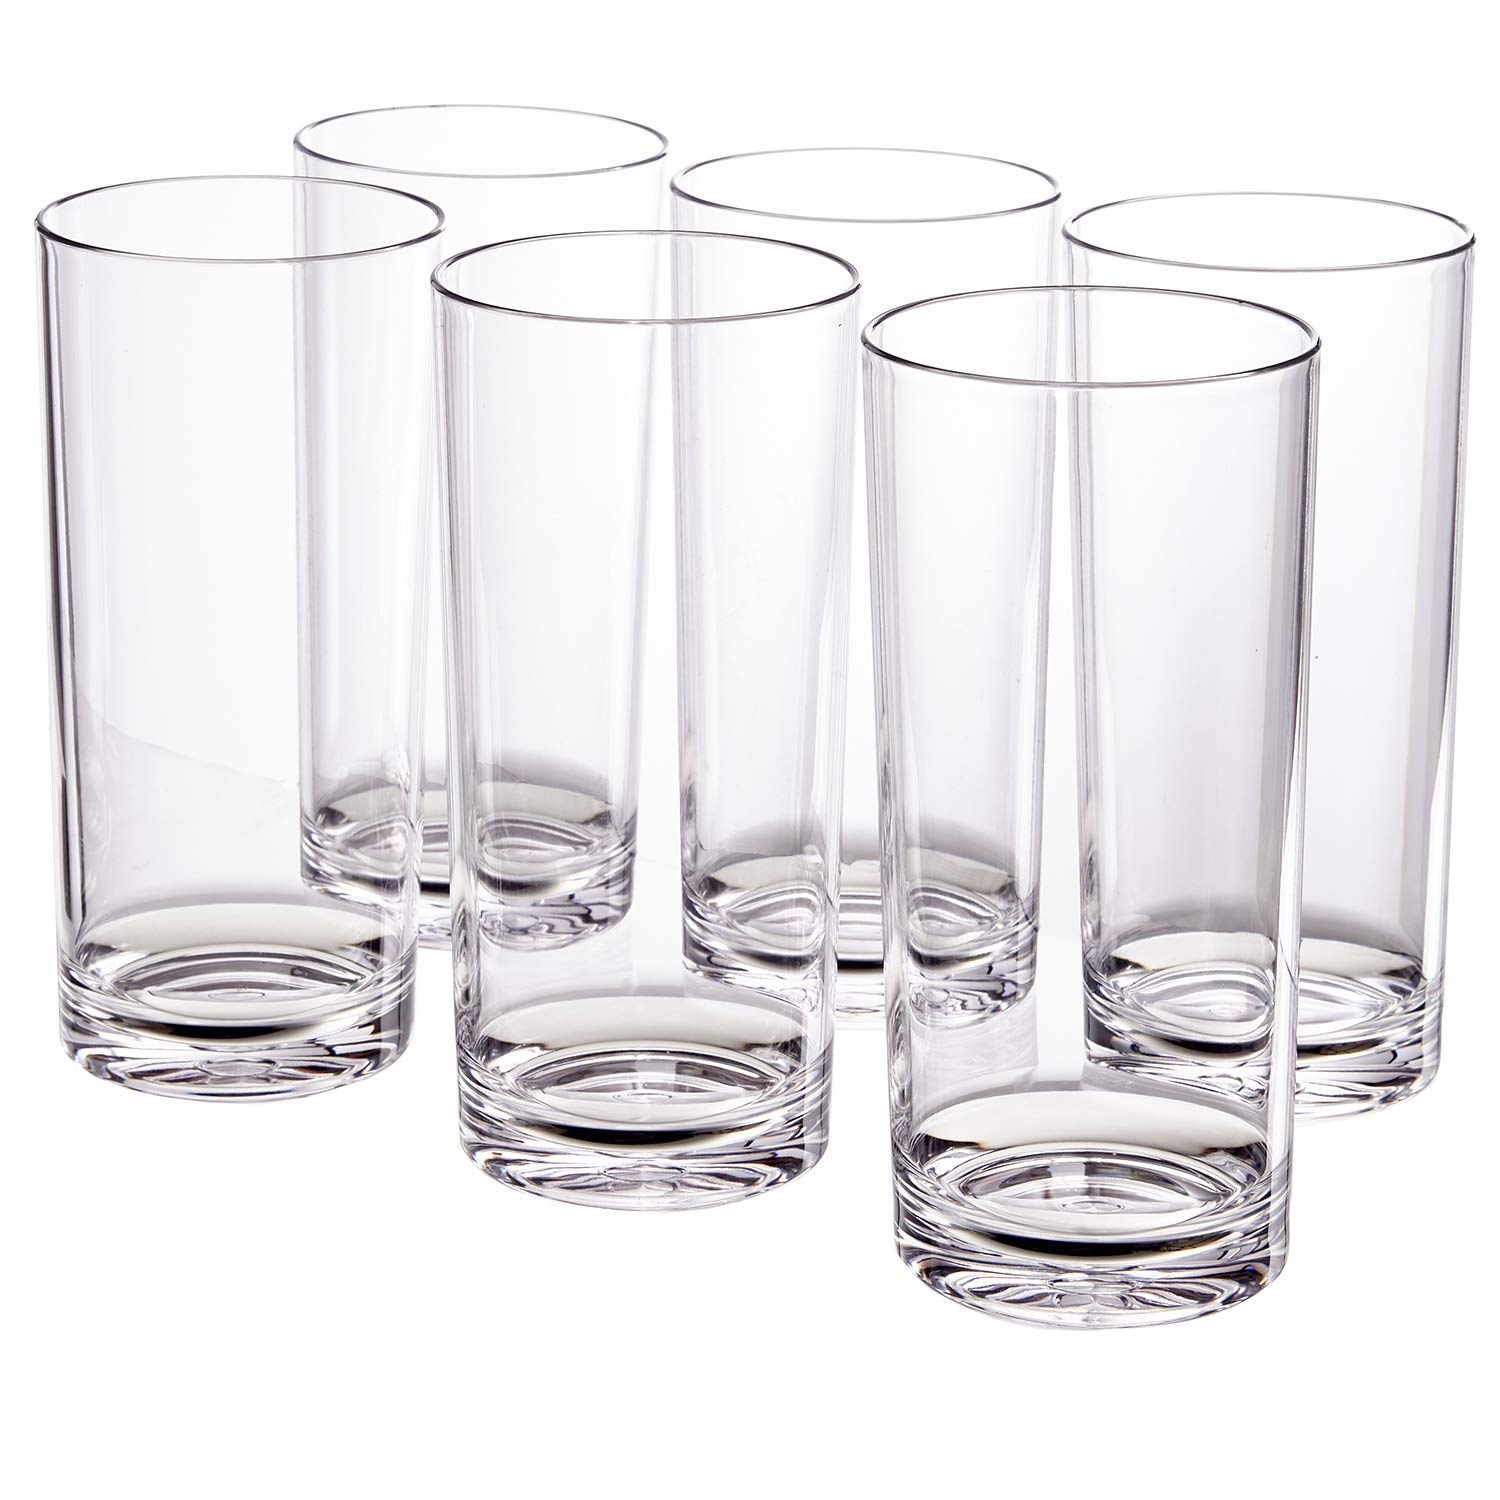 Classic 24-ounce Premium Quality Plastic Tumbler | set of 6 Clear